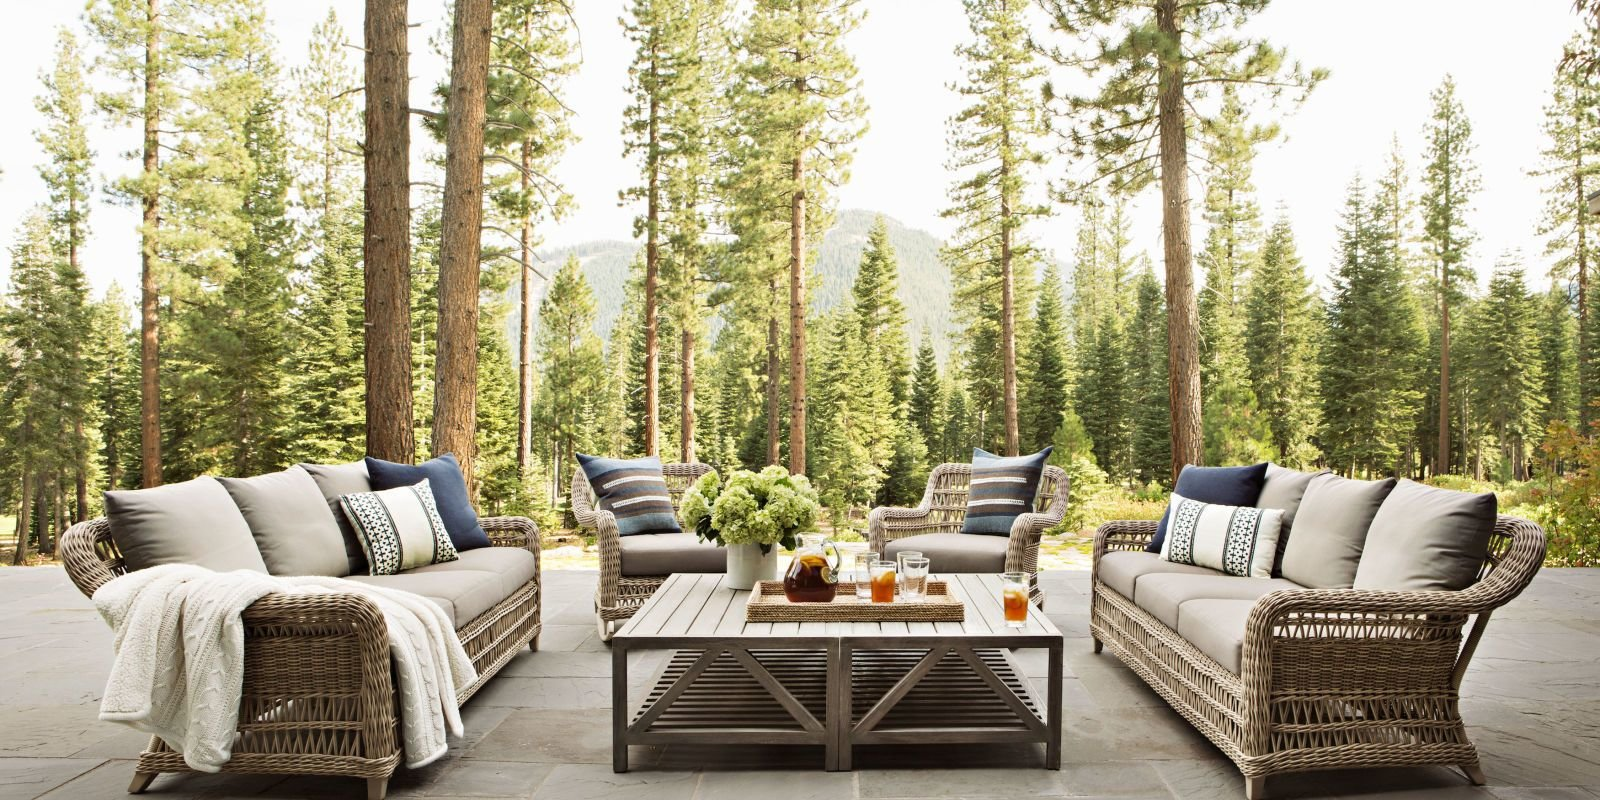 Best 85 Patio And Outdoor Room Design Ideas And Photos With Pictures